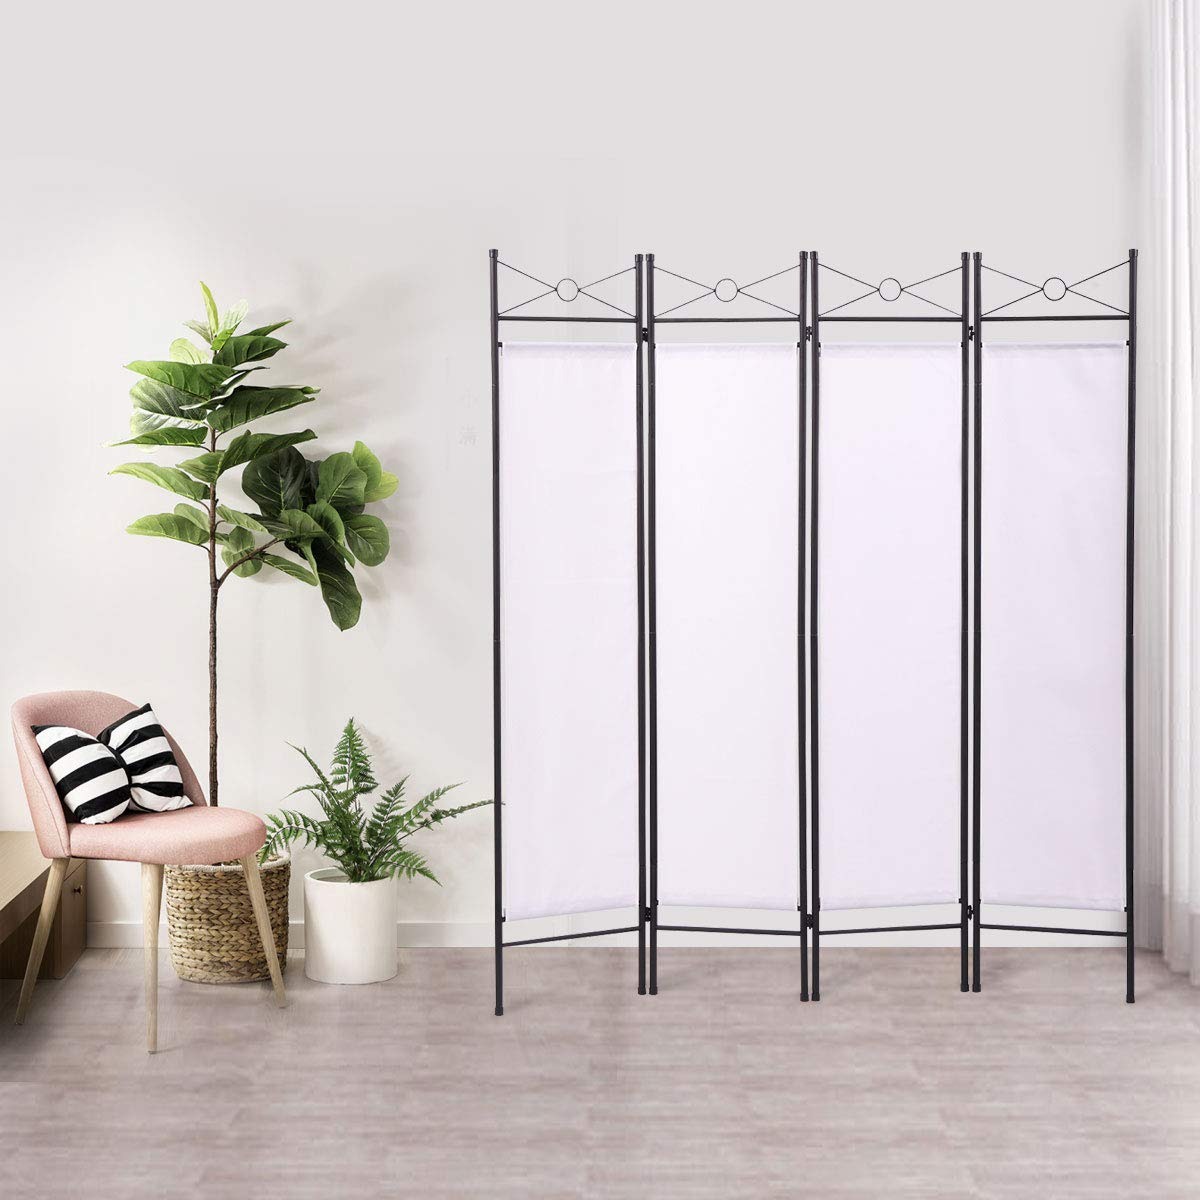 BWM.Co 4 Panel Room Divider Folding Privacy Screen Steel Frame Freestanding Partition Divider for Office, Living Room, White by BWM.Co